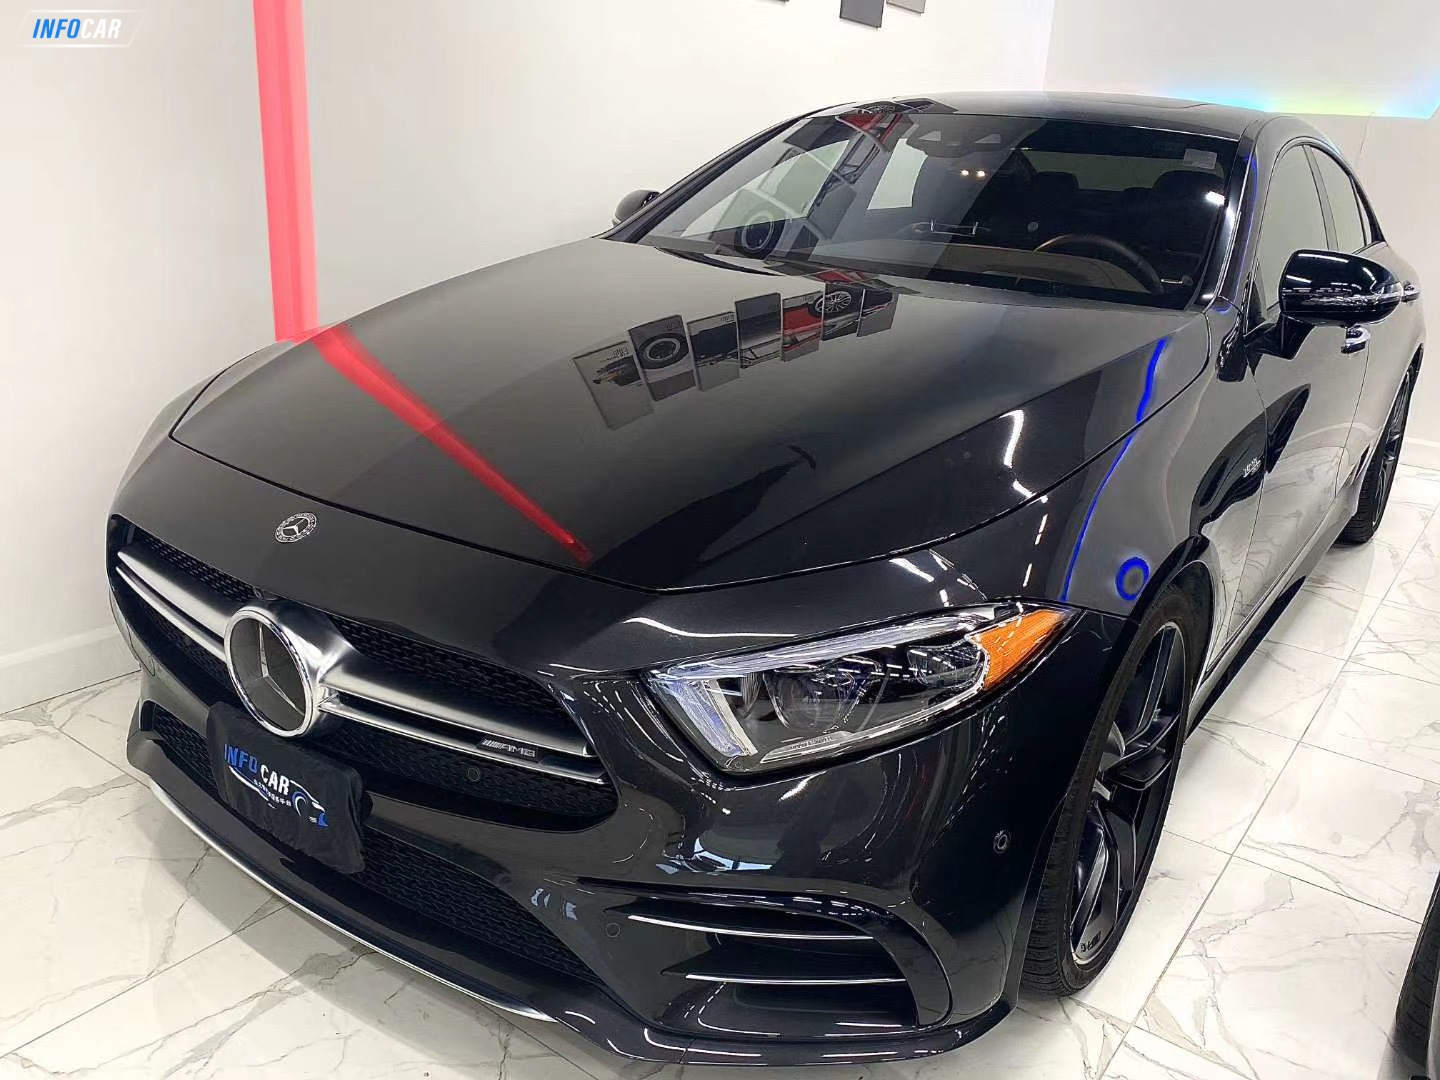 2019 Mercedes-Benz CLS-Class 53 AMG Edition 1 - INFOCAR - Toronto's Most Comprehensive New and Used Auto Trading Platform